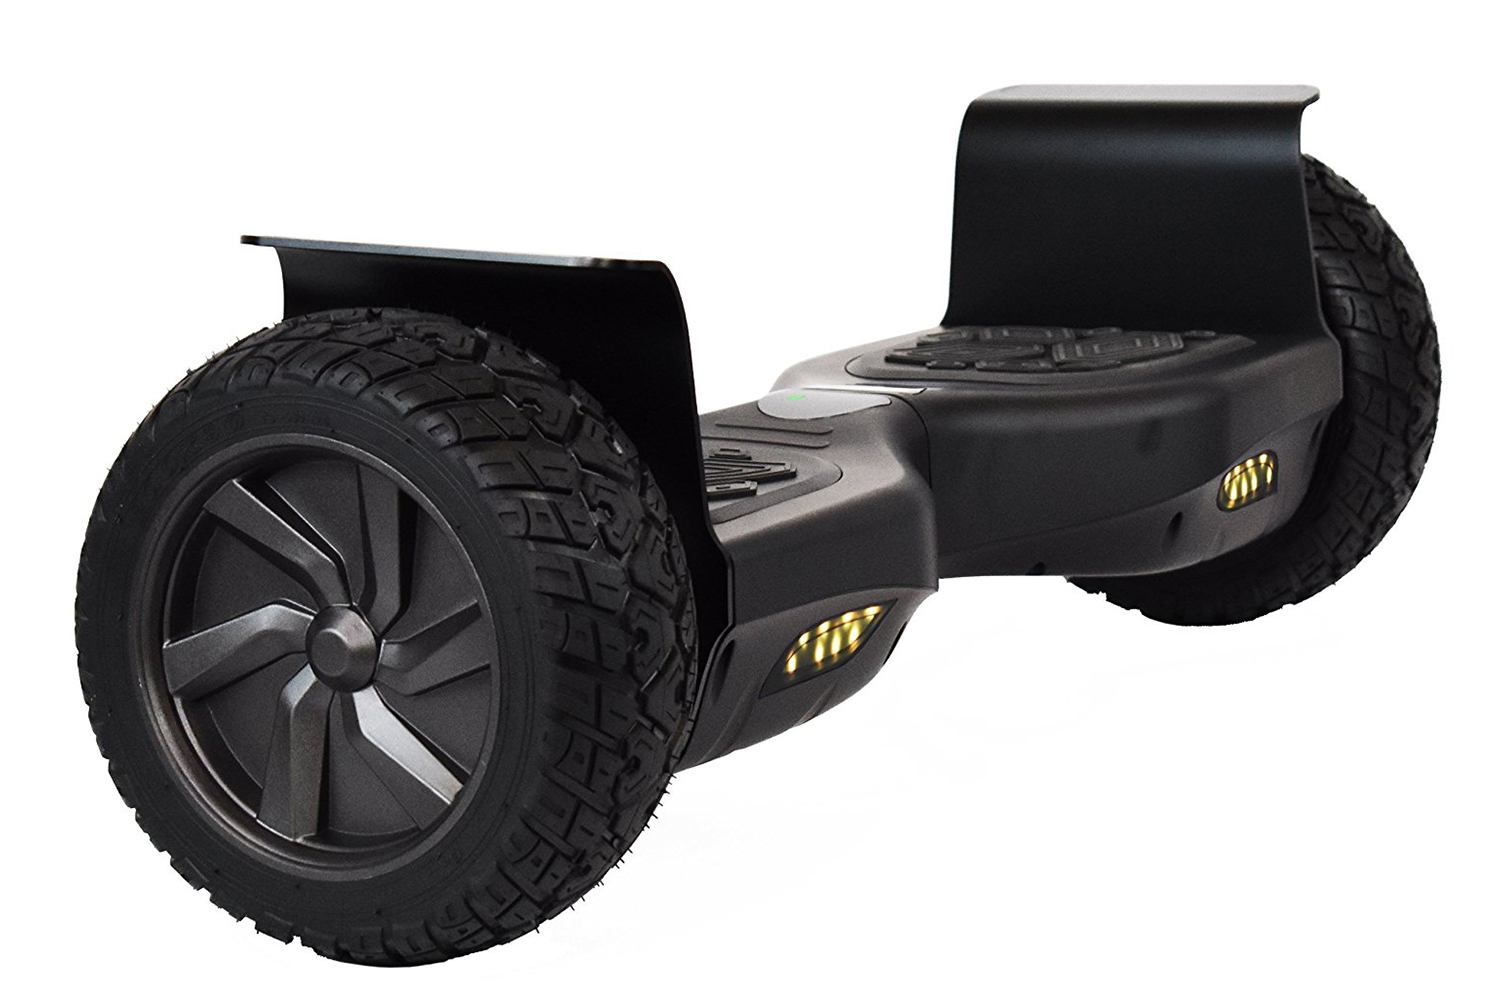 Cho H1 Off Road Self Balancing Scooter Hoverboard Gearscoot